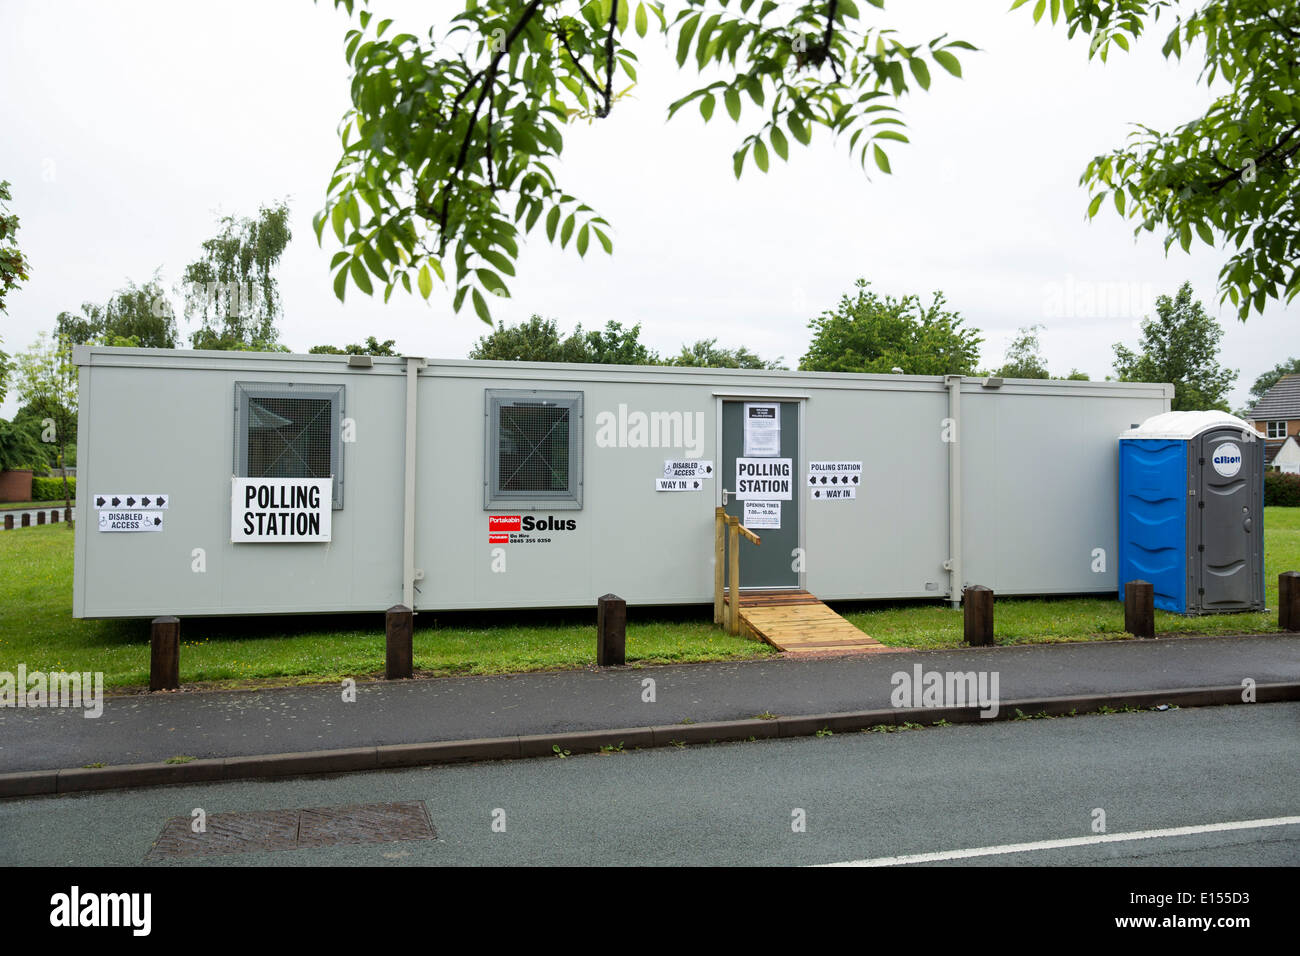 A portacabin being used as a Polling Station in Durham Close, Fazeley, Tamworth, Staffordshire for the European Elections - Stock Image